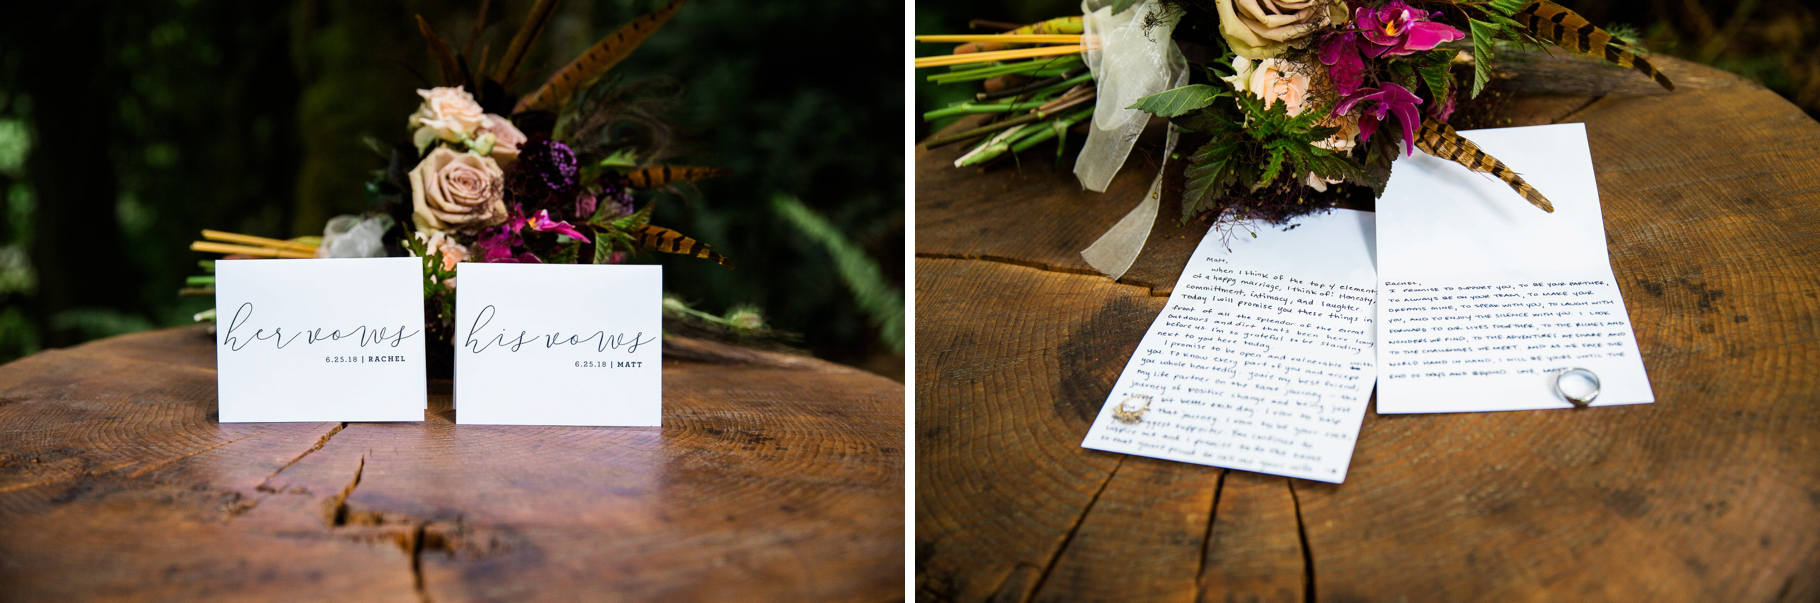 14-Treehouse-Point-Elopement-Seattle-Wedding-Photographer-Vows